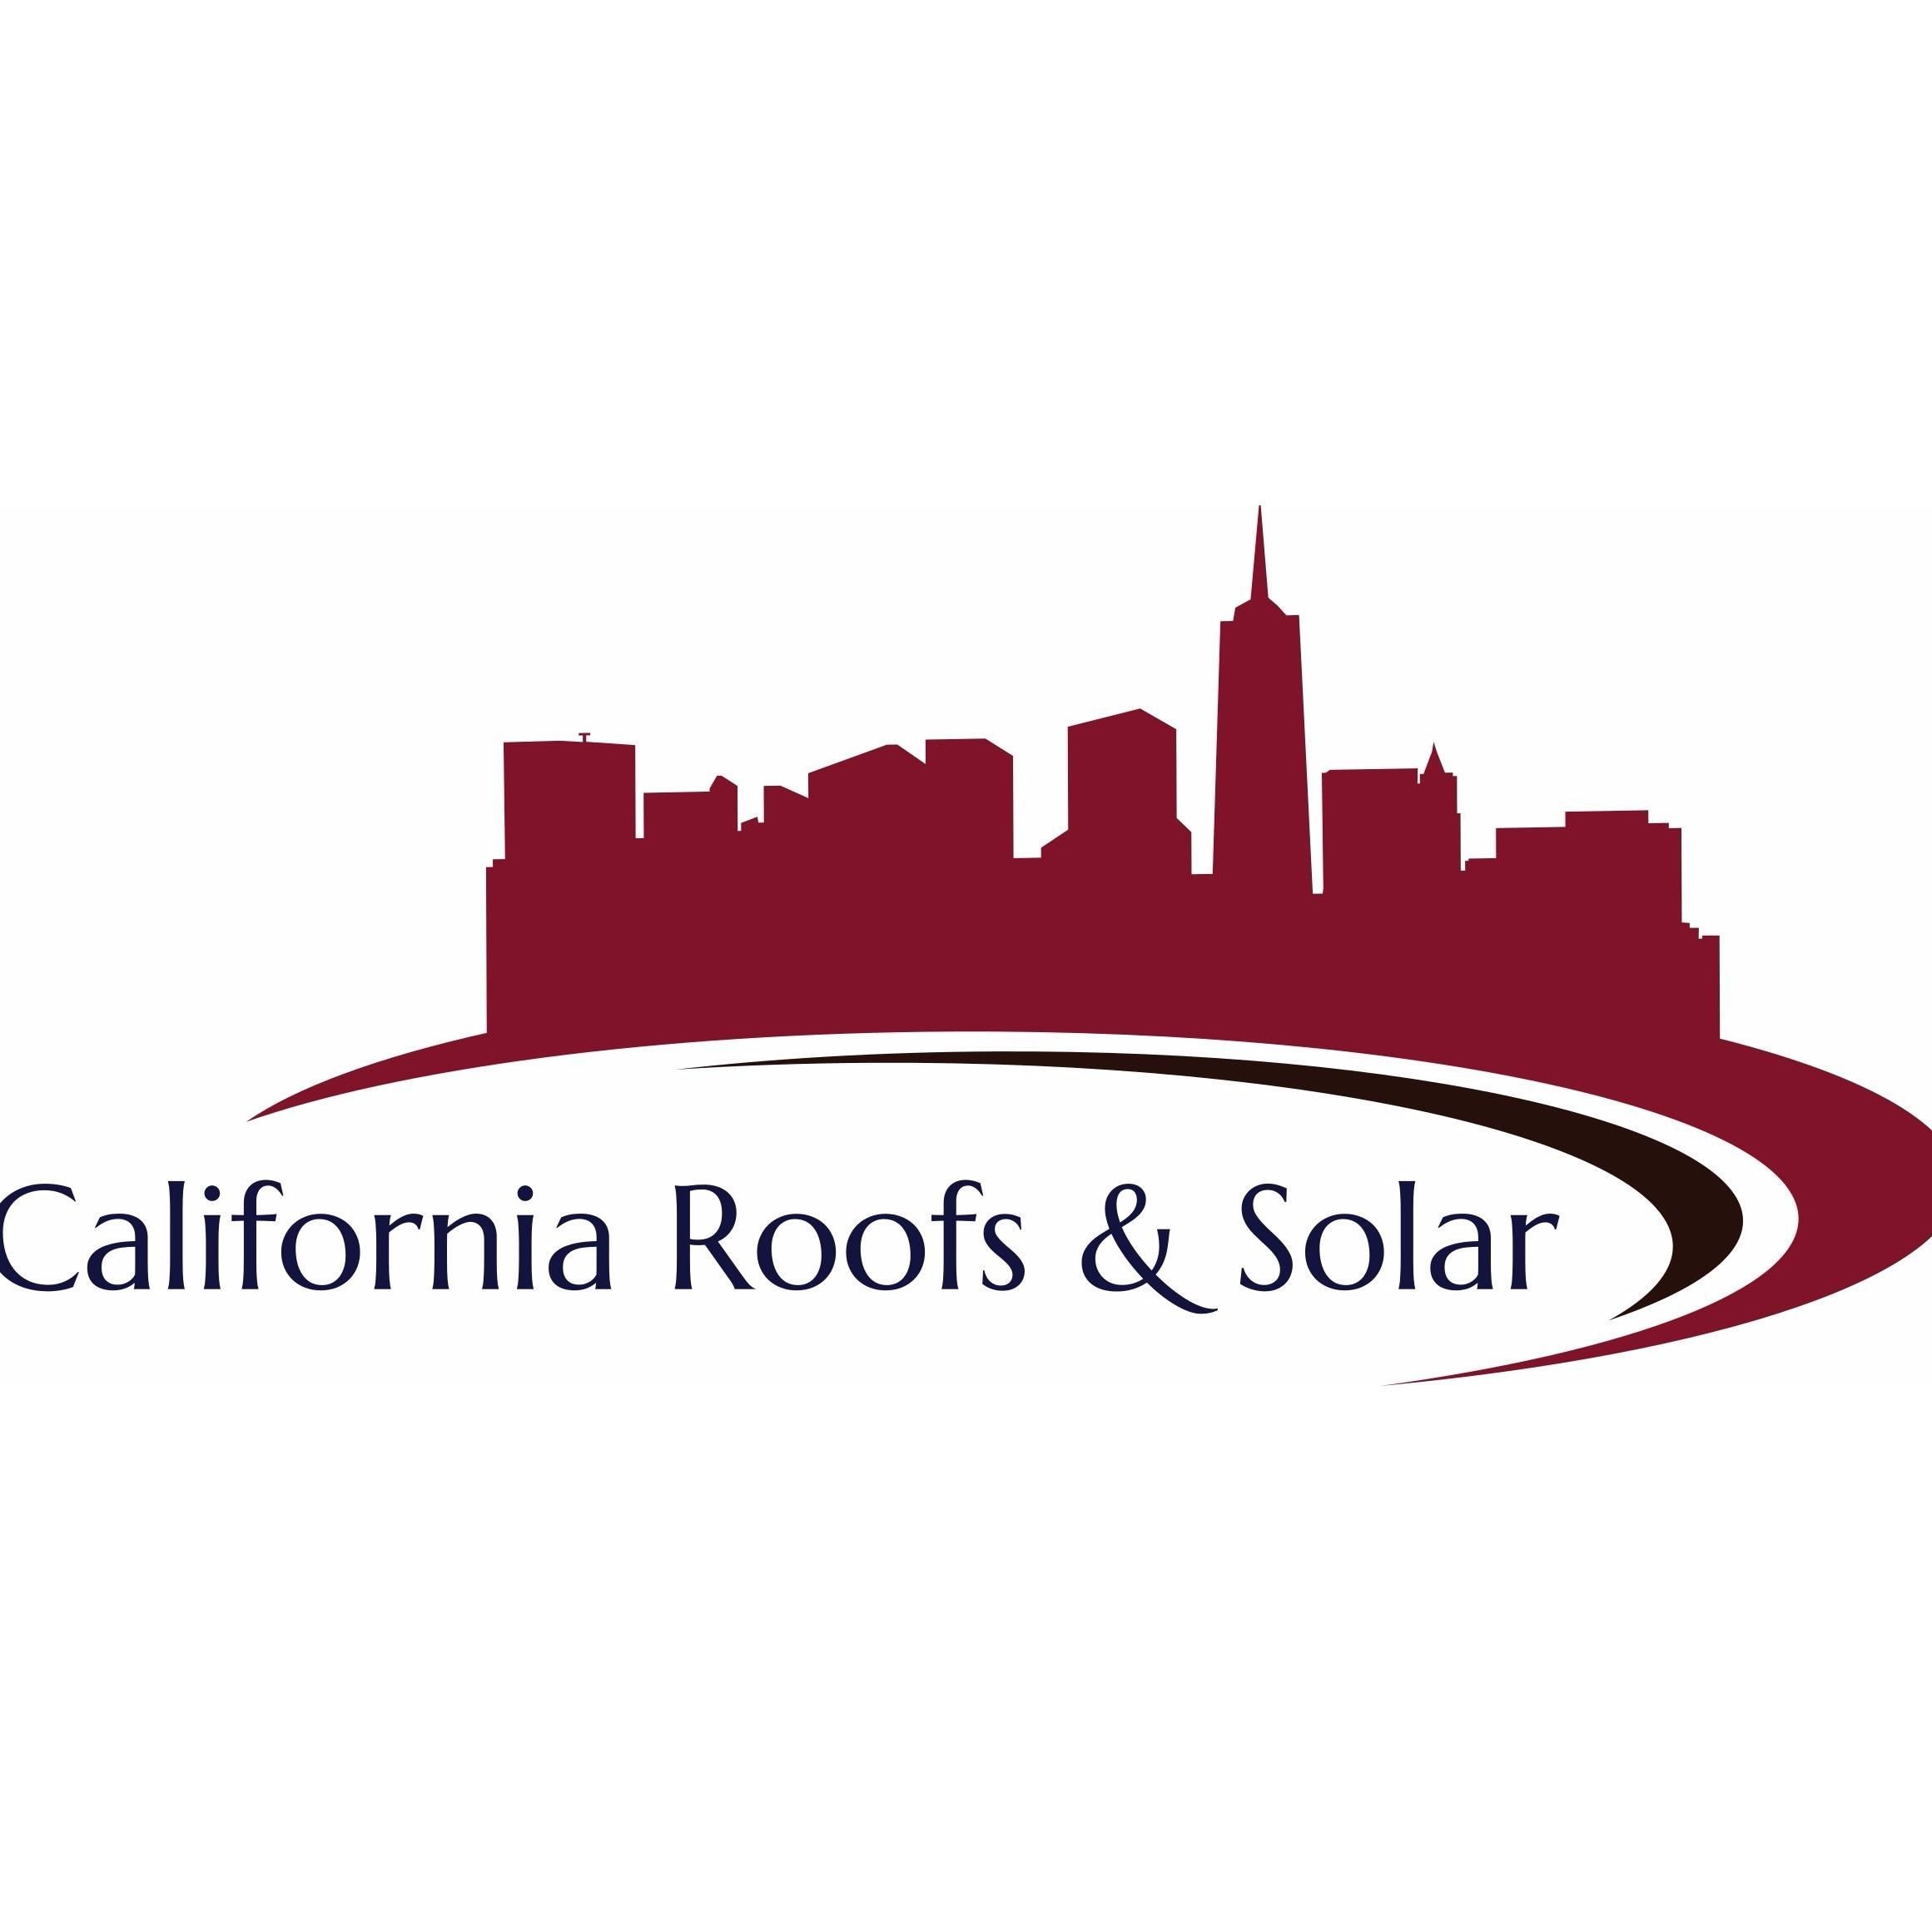 California Roofs & Solar image 3